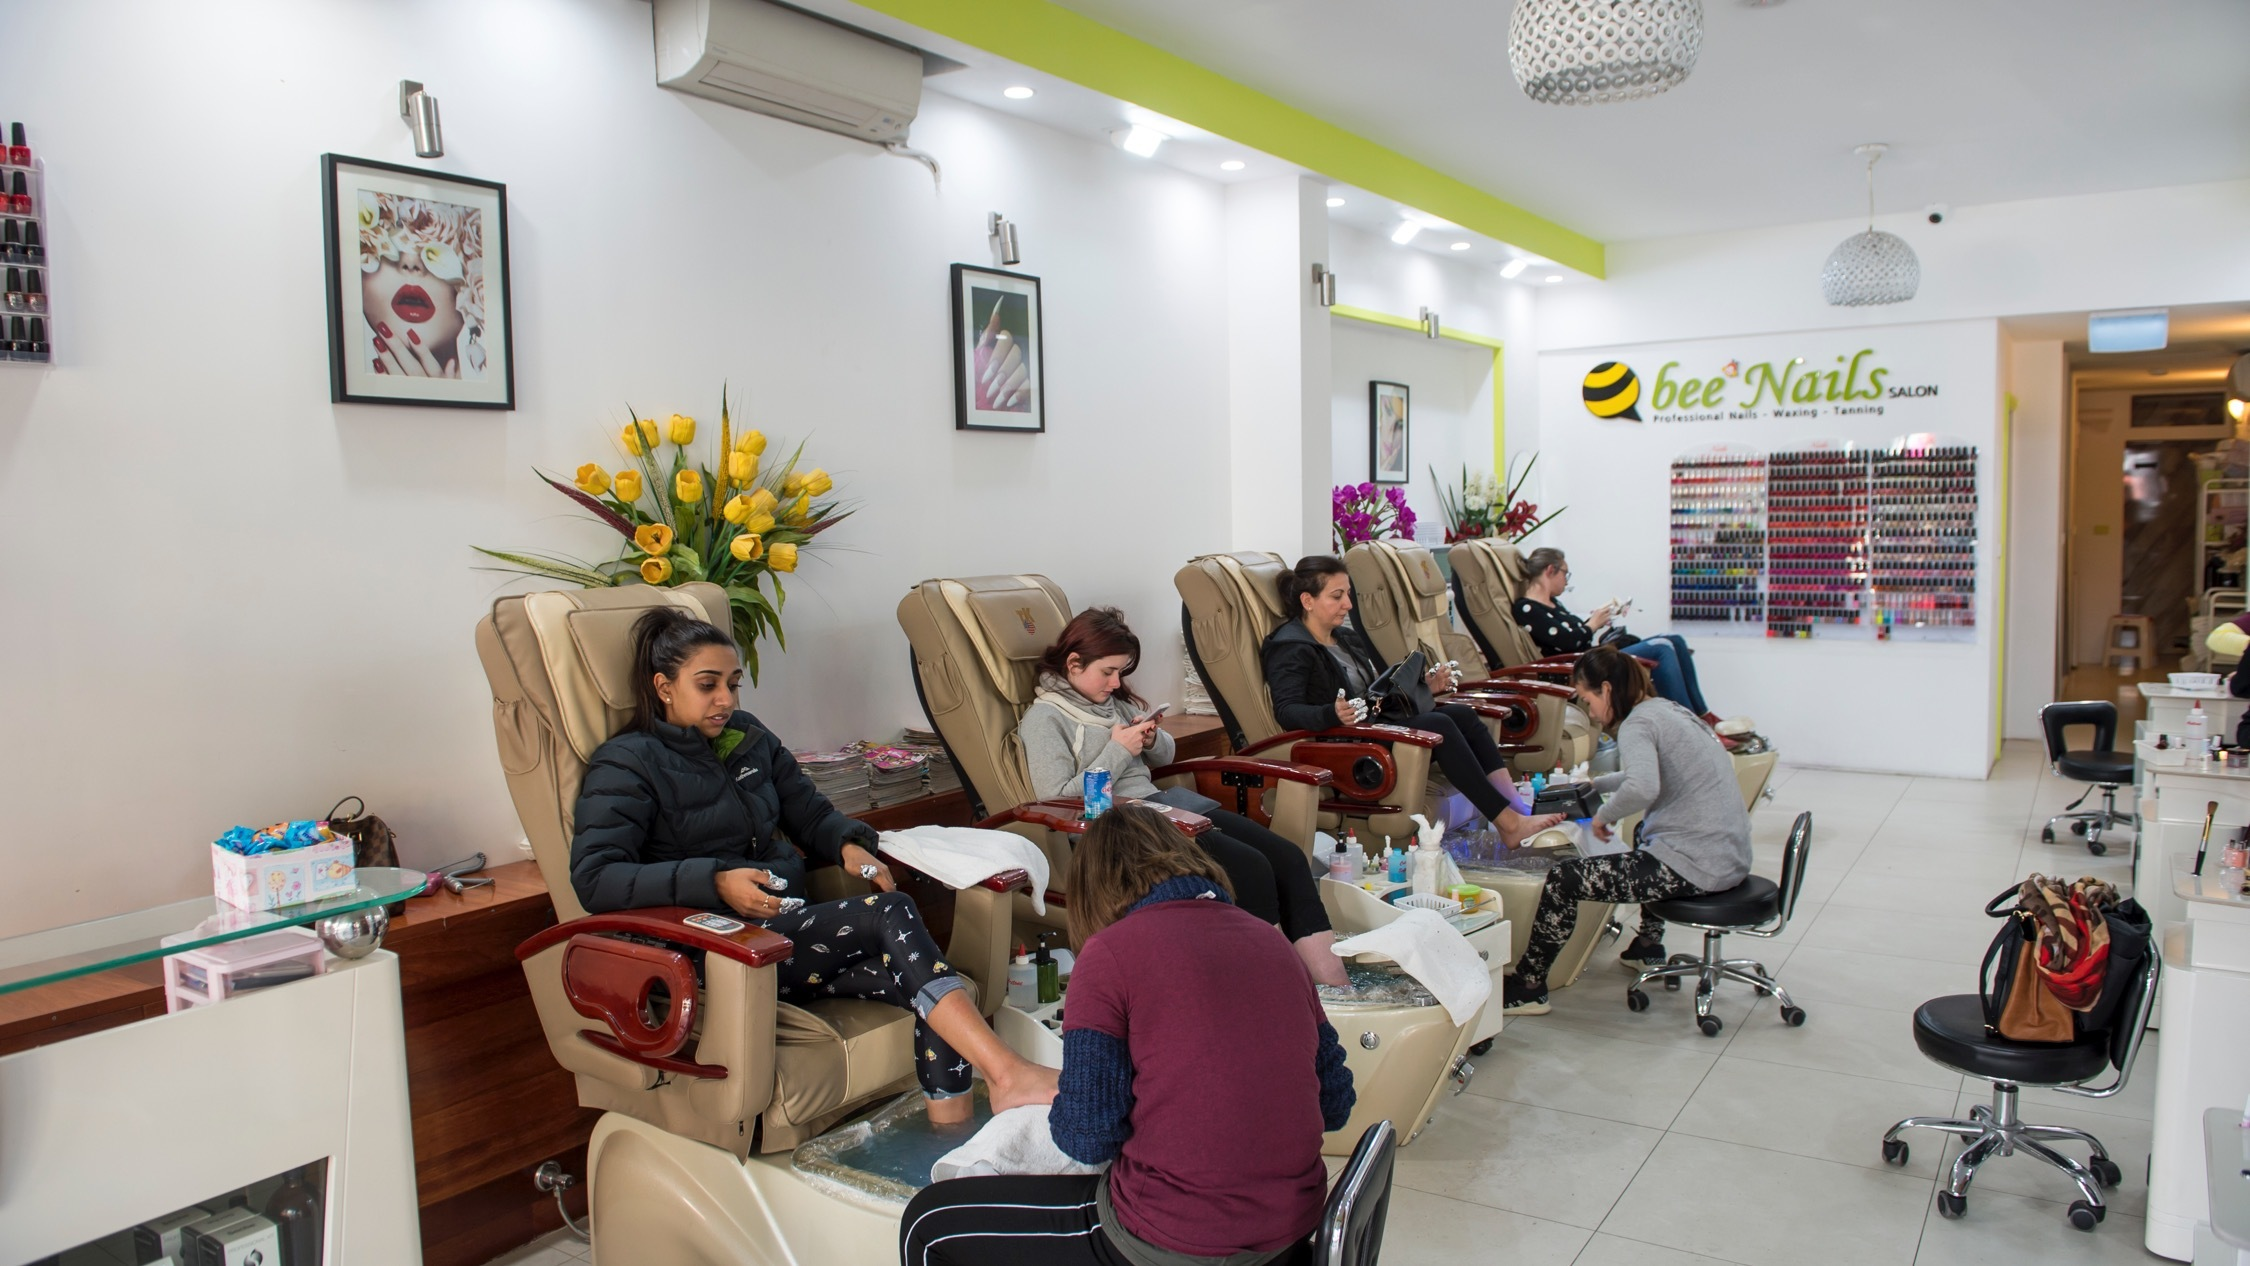 People getting their nails done at Q bee Nails